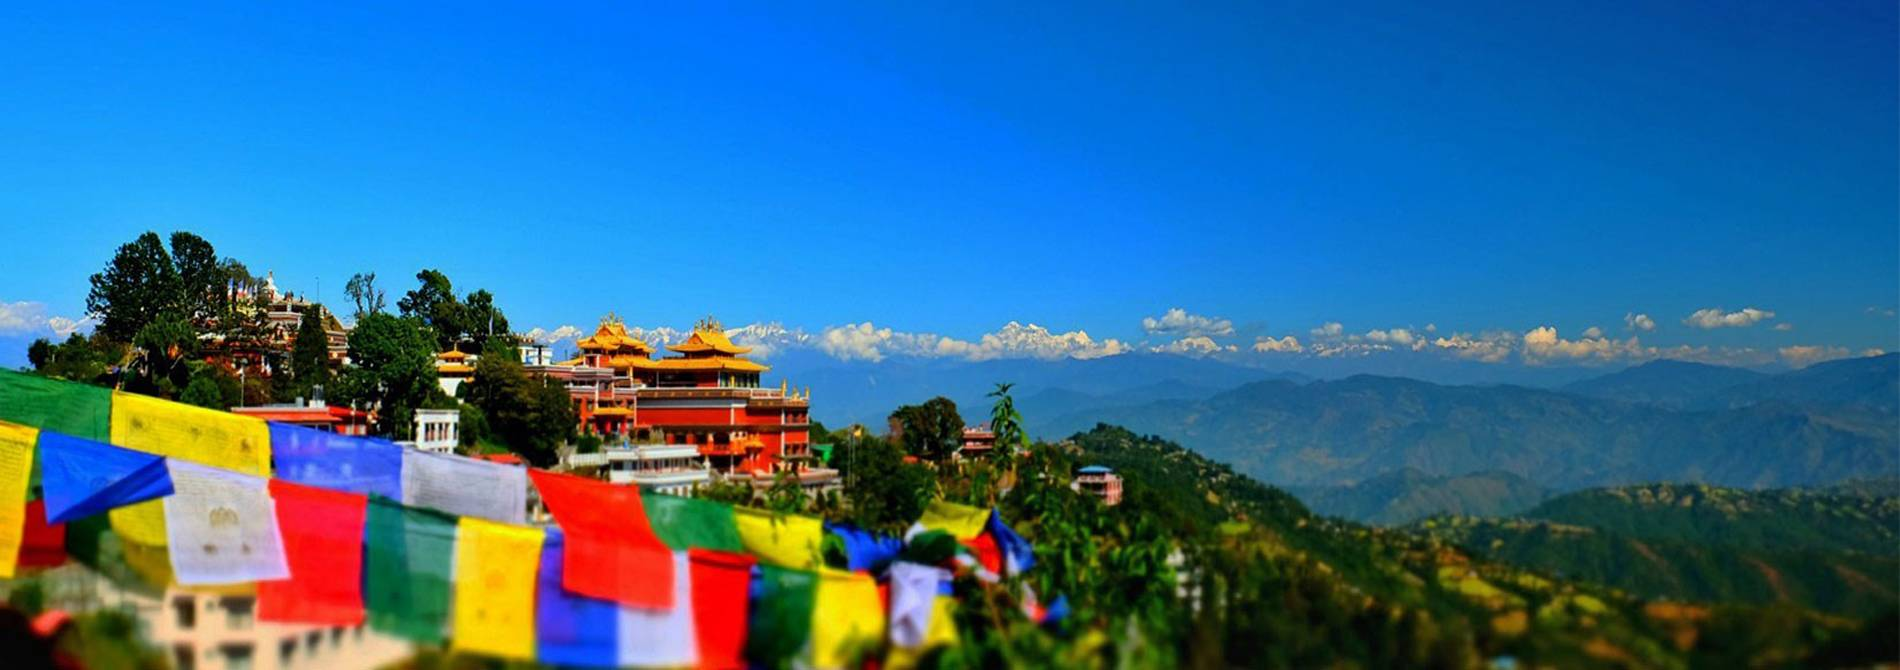 KATHMANDU VALLEY CULTURE HIKING